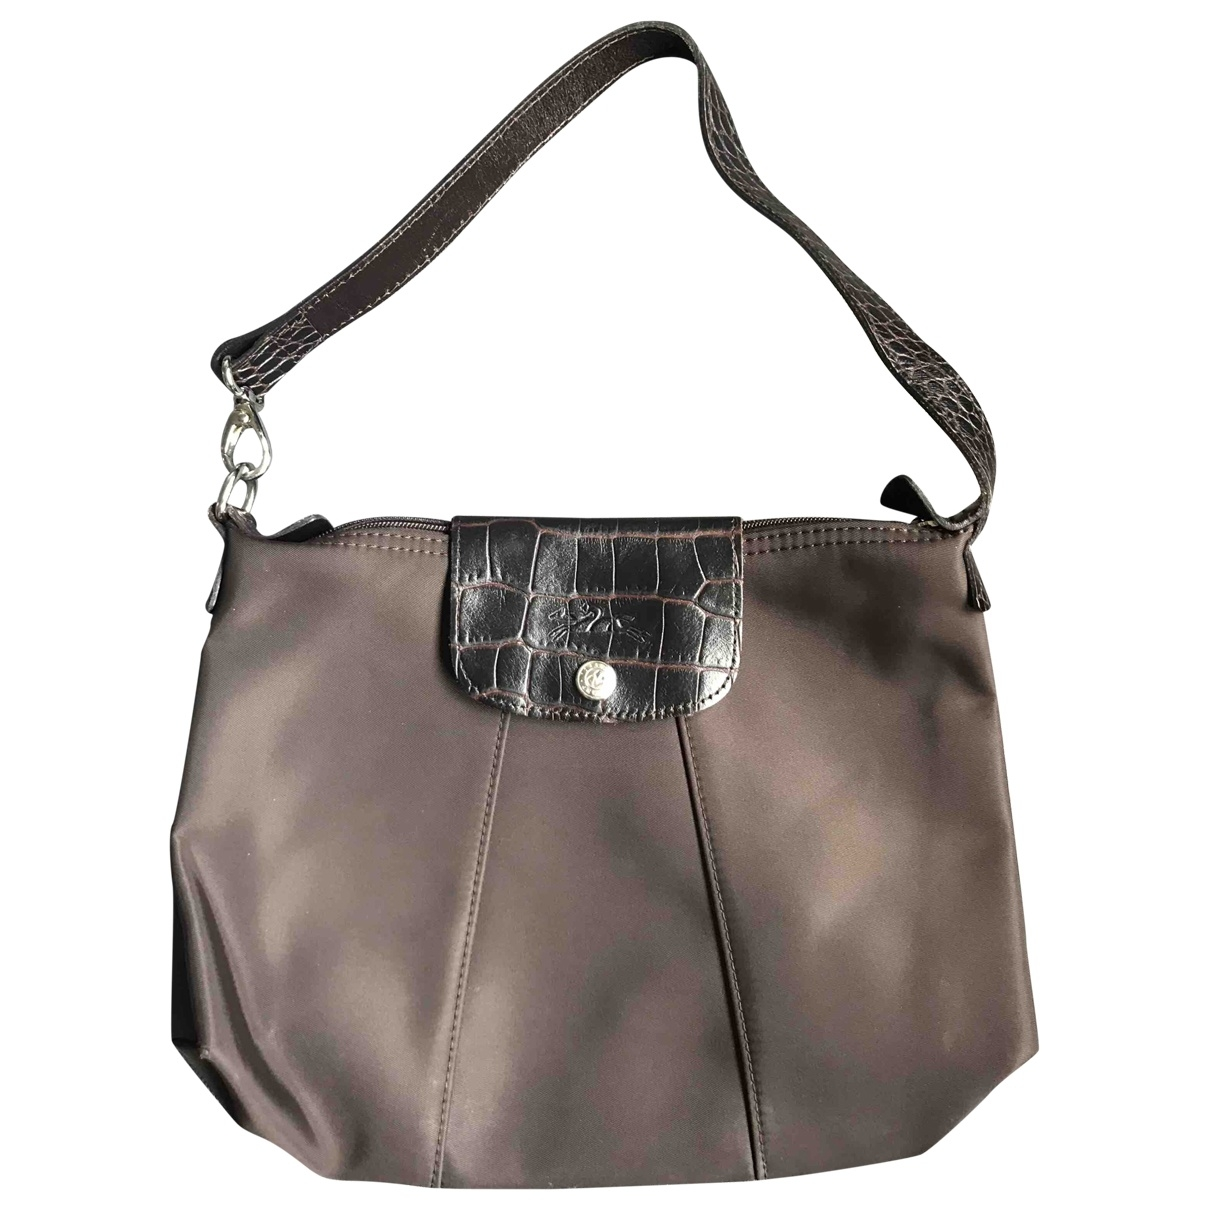 Longchamp \N Brown Cloth handbag for Women \N